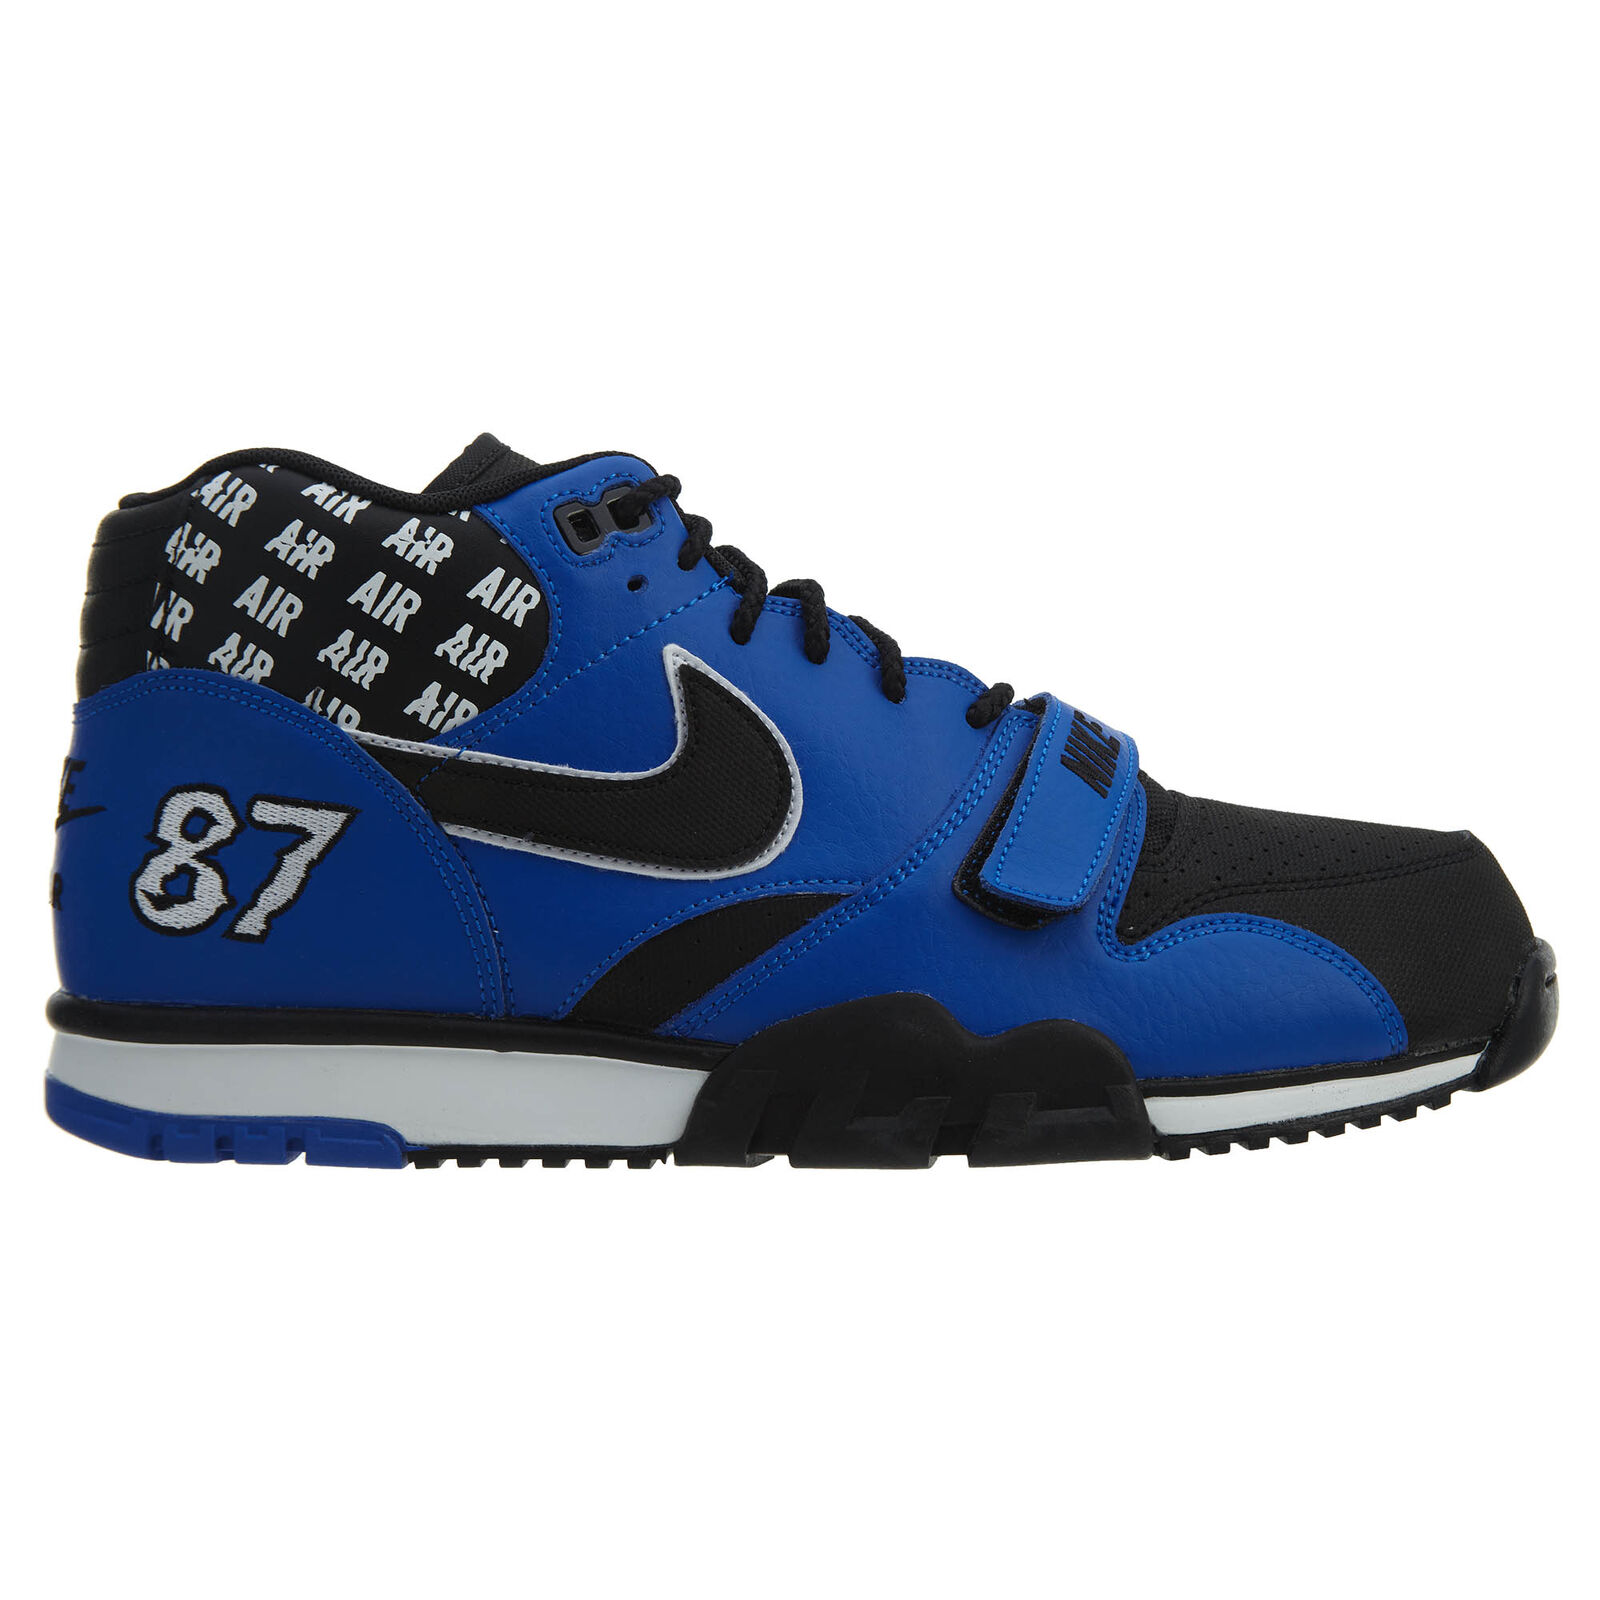 Nike Air Trainer 1 Mid SOA Mens AQ5099-400 Hyper Cobalt Athletic Shoes Size 8